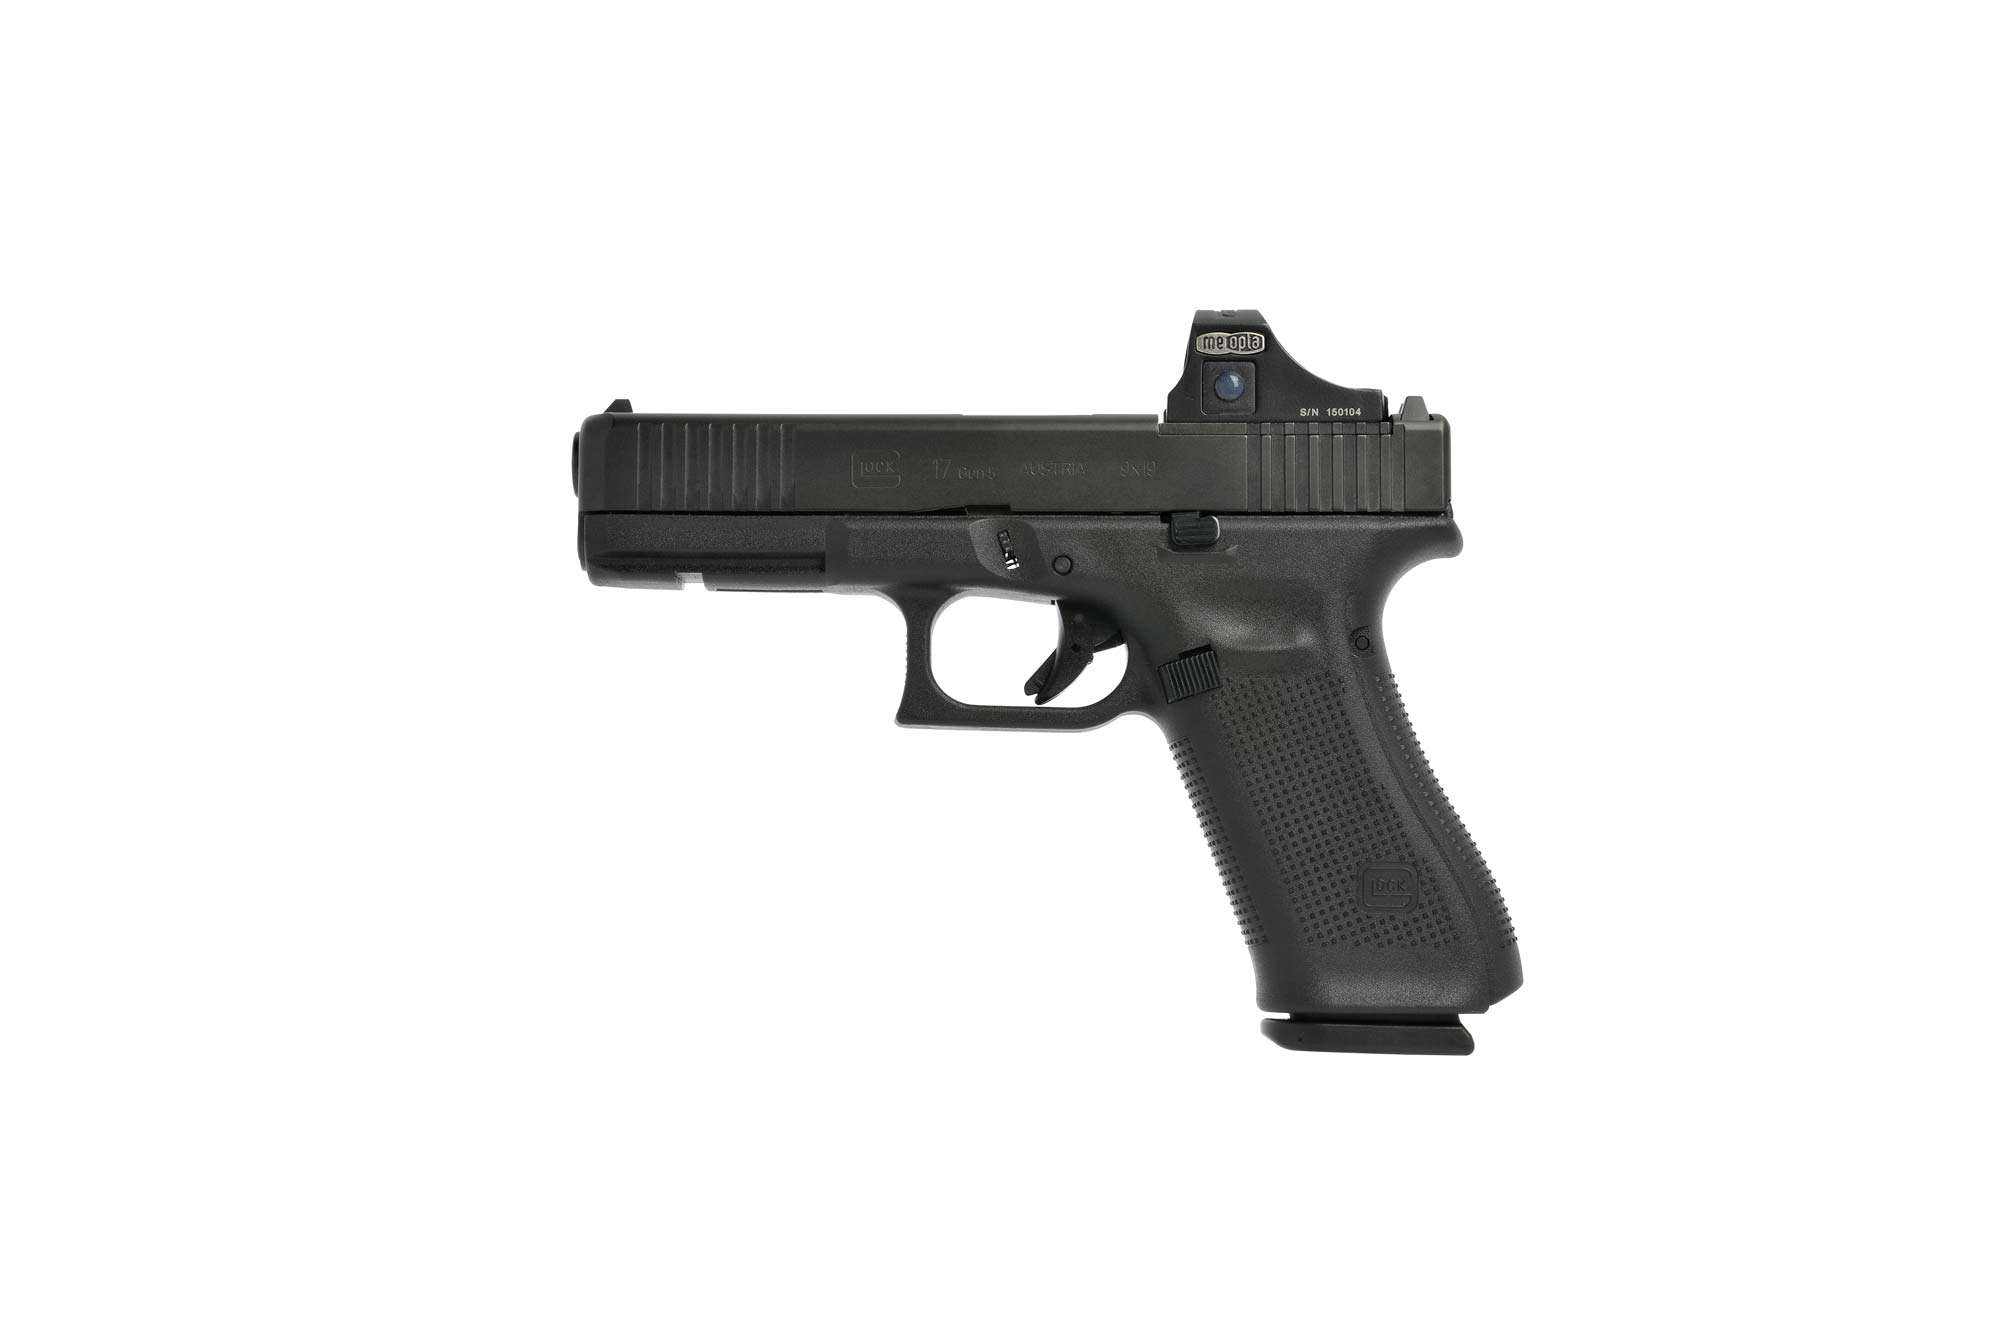 GLOCK 17 Gen5 MOS with mounted mini spotlight sighting